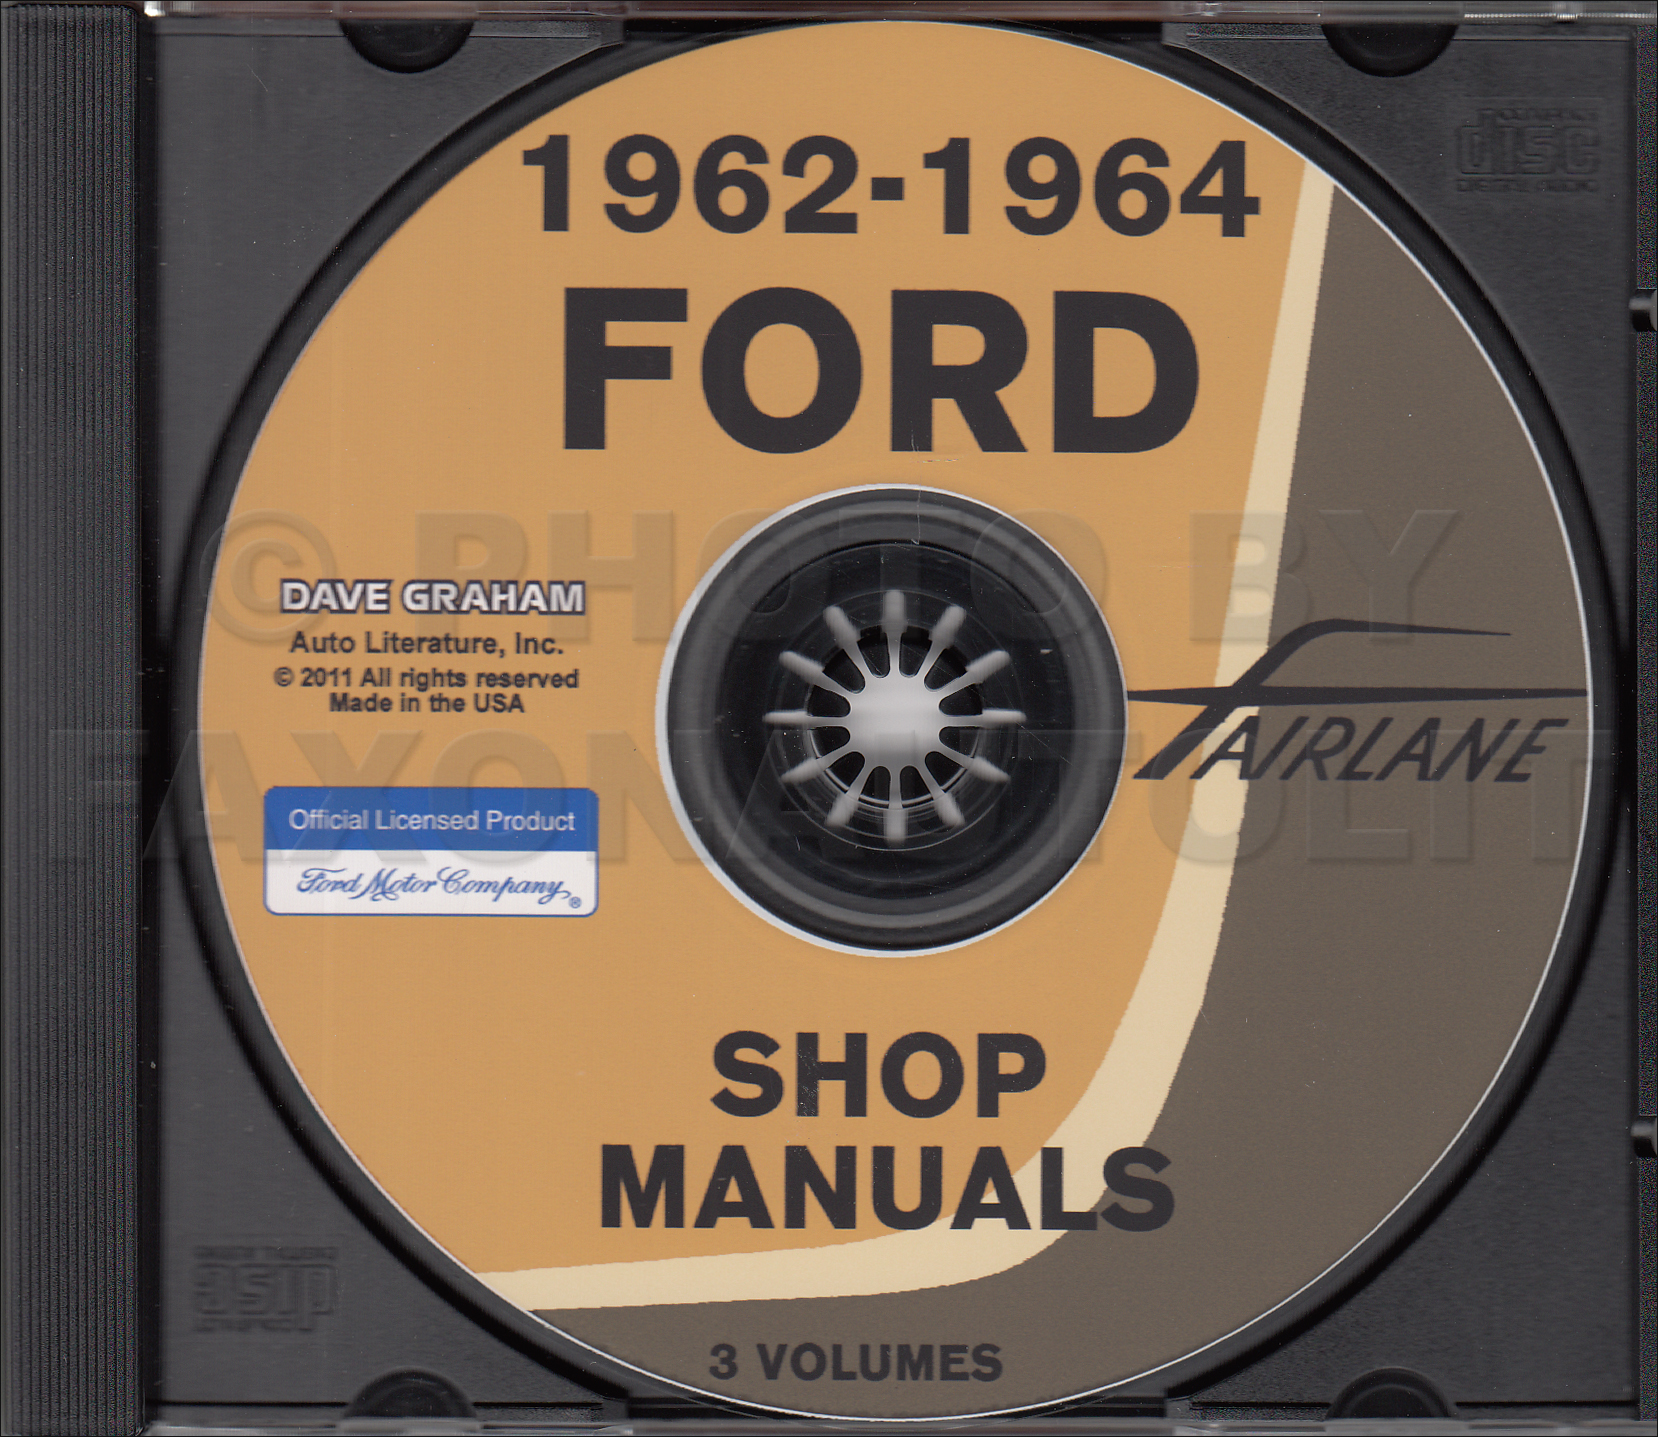 1960 Ford Car CD-ROM Shop Manual